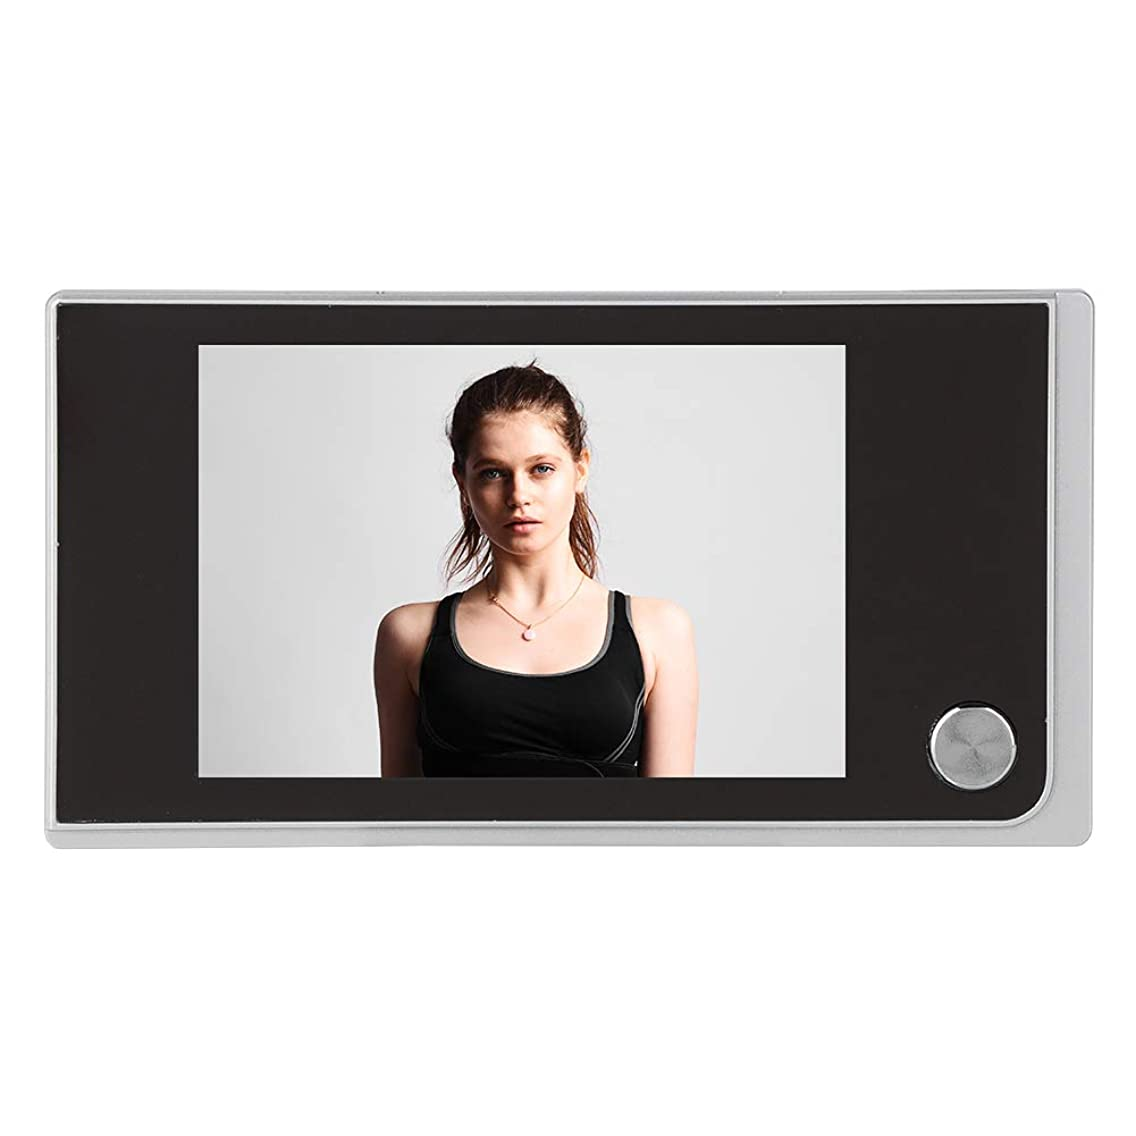 ASHATA Smart Video Doorbell, Door Camera Peephole Viewer with 3.5-inch Digital LCD Color Screen/ 120 Degree Actual Viewing Angle/24 Hours Monitoring for Your Home Security